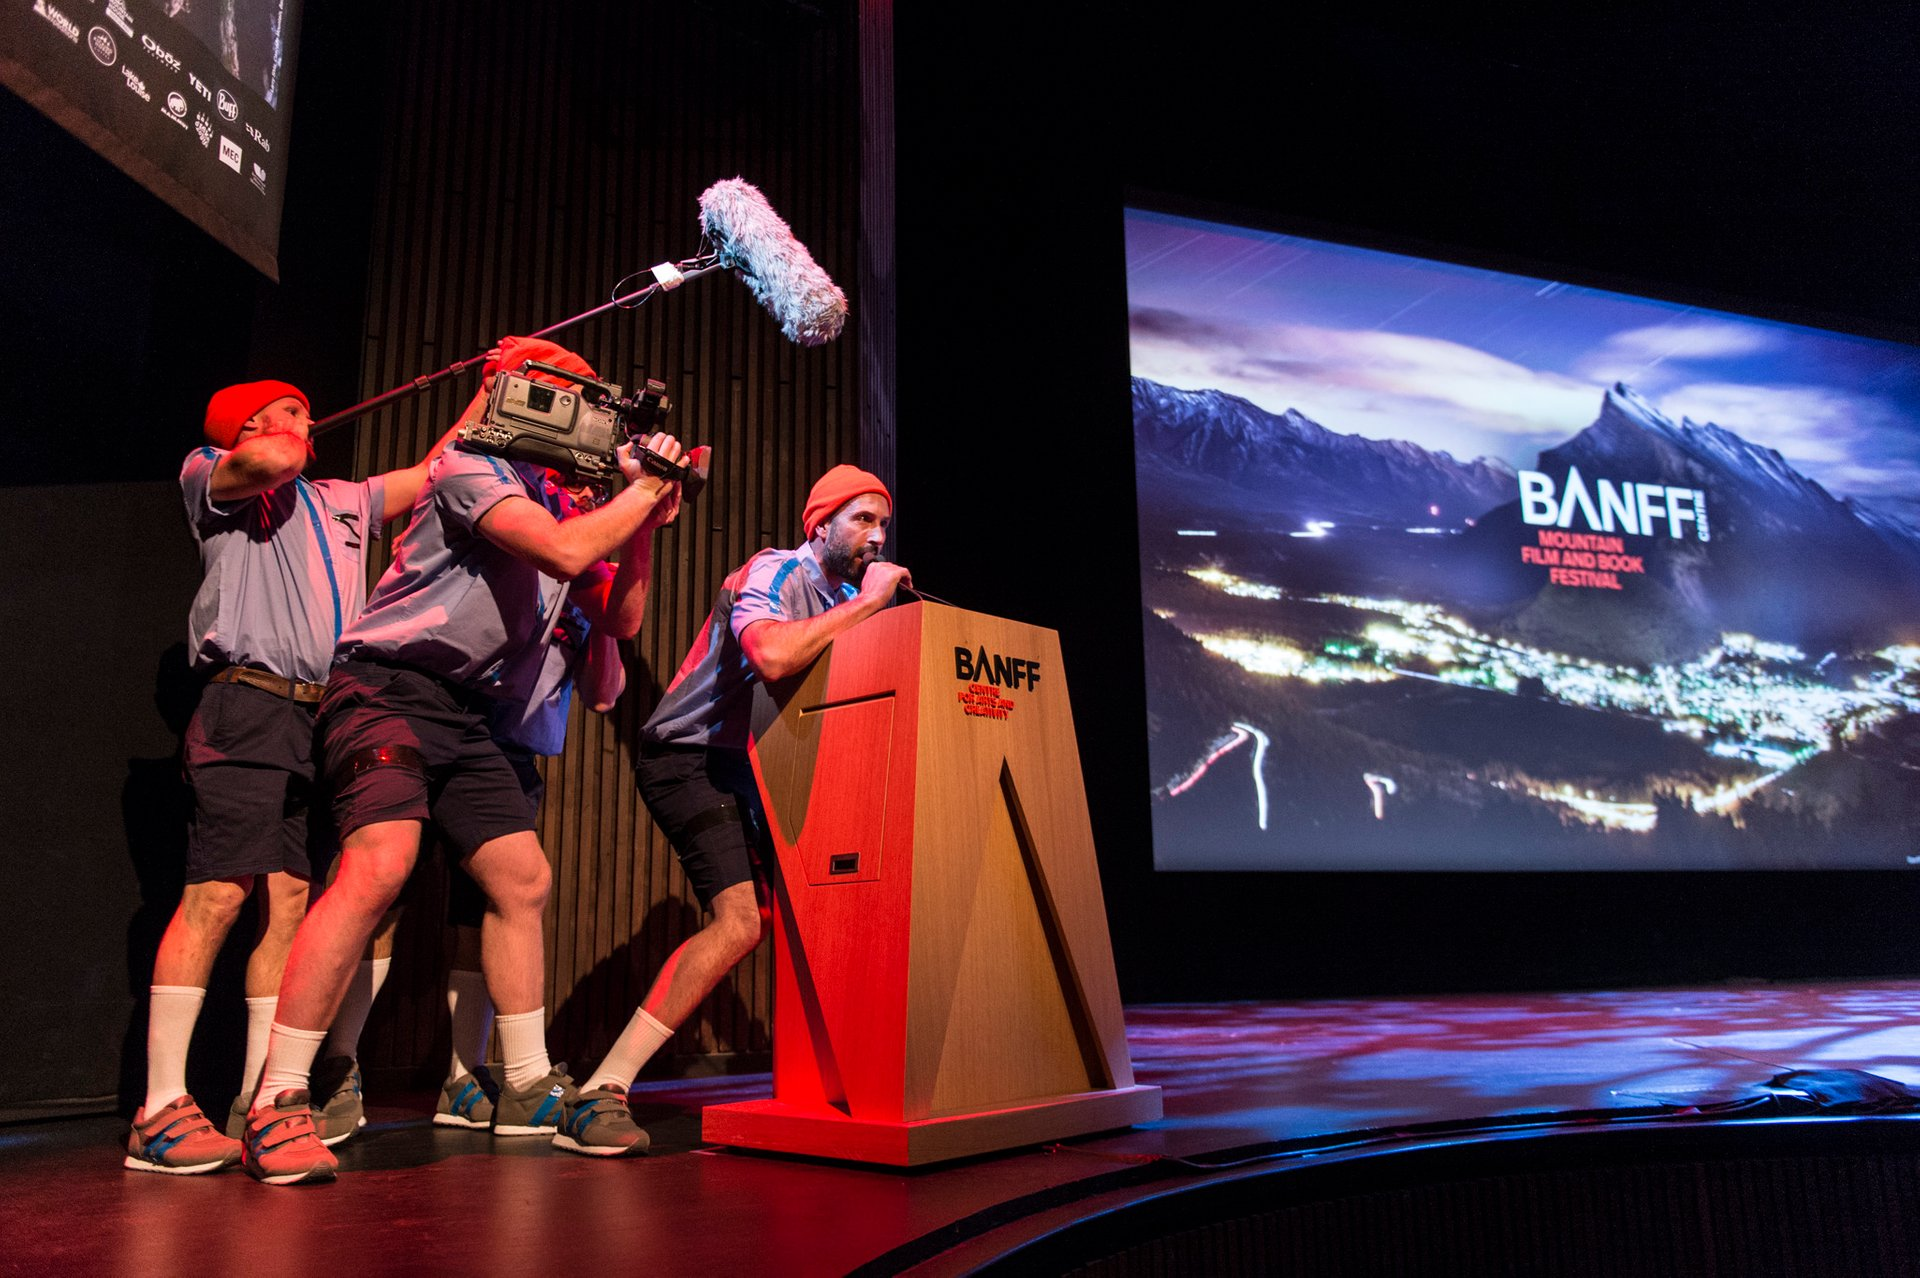 Best time for Banff Centre Mountain Film and Book Festival in Banff & Jasper National Parks 2020